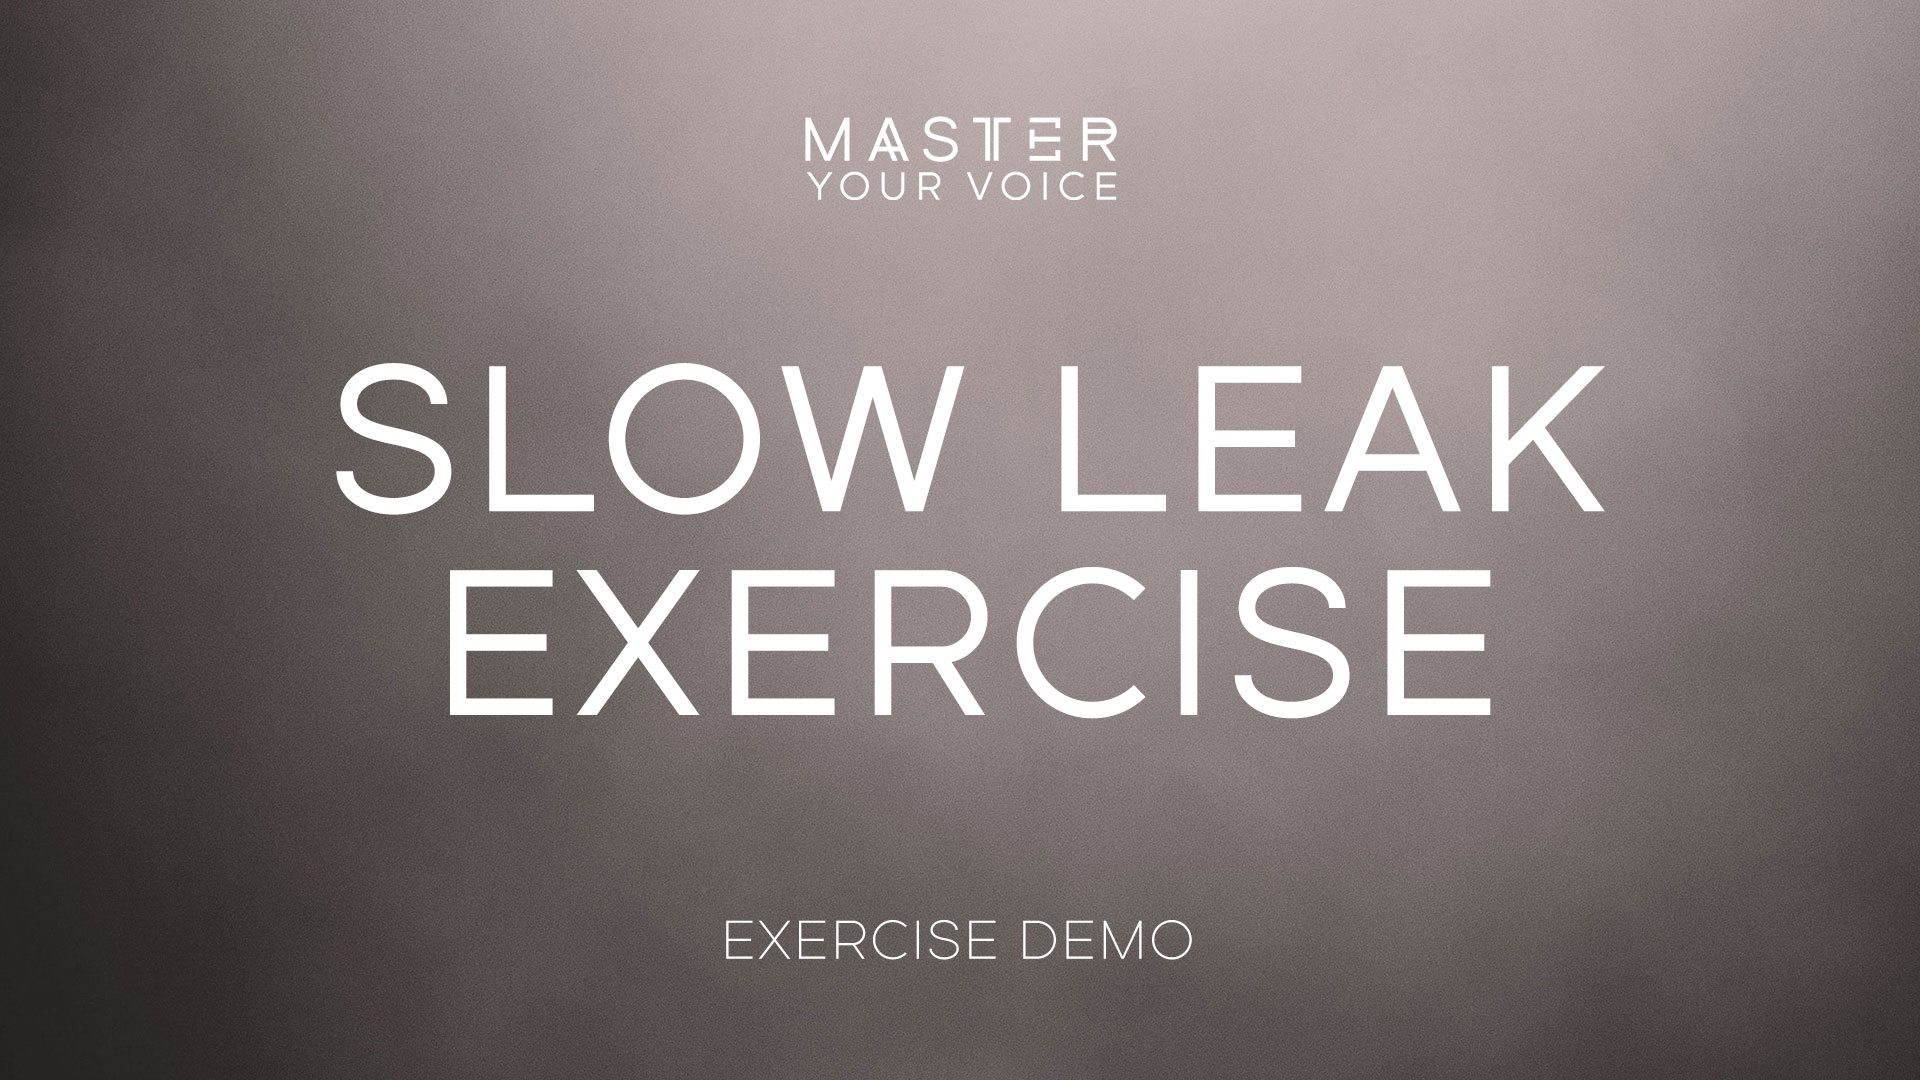 Slow Leak Exercise Demo